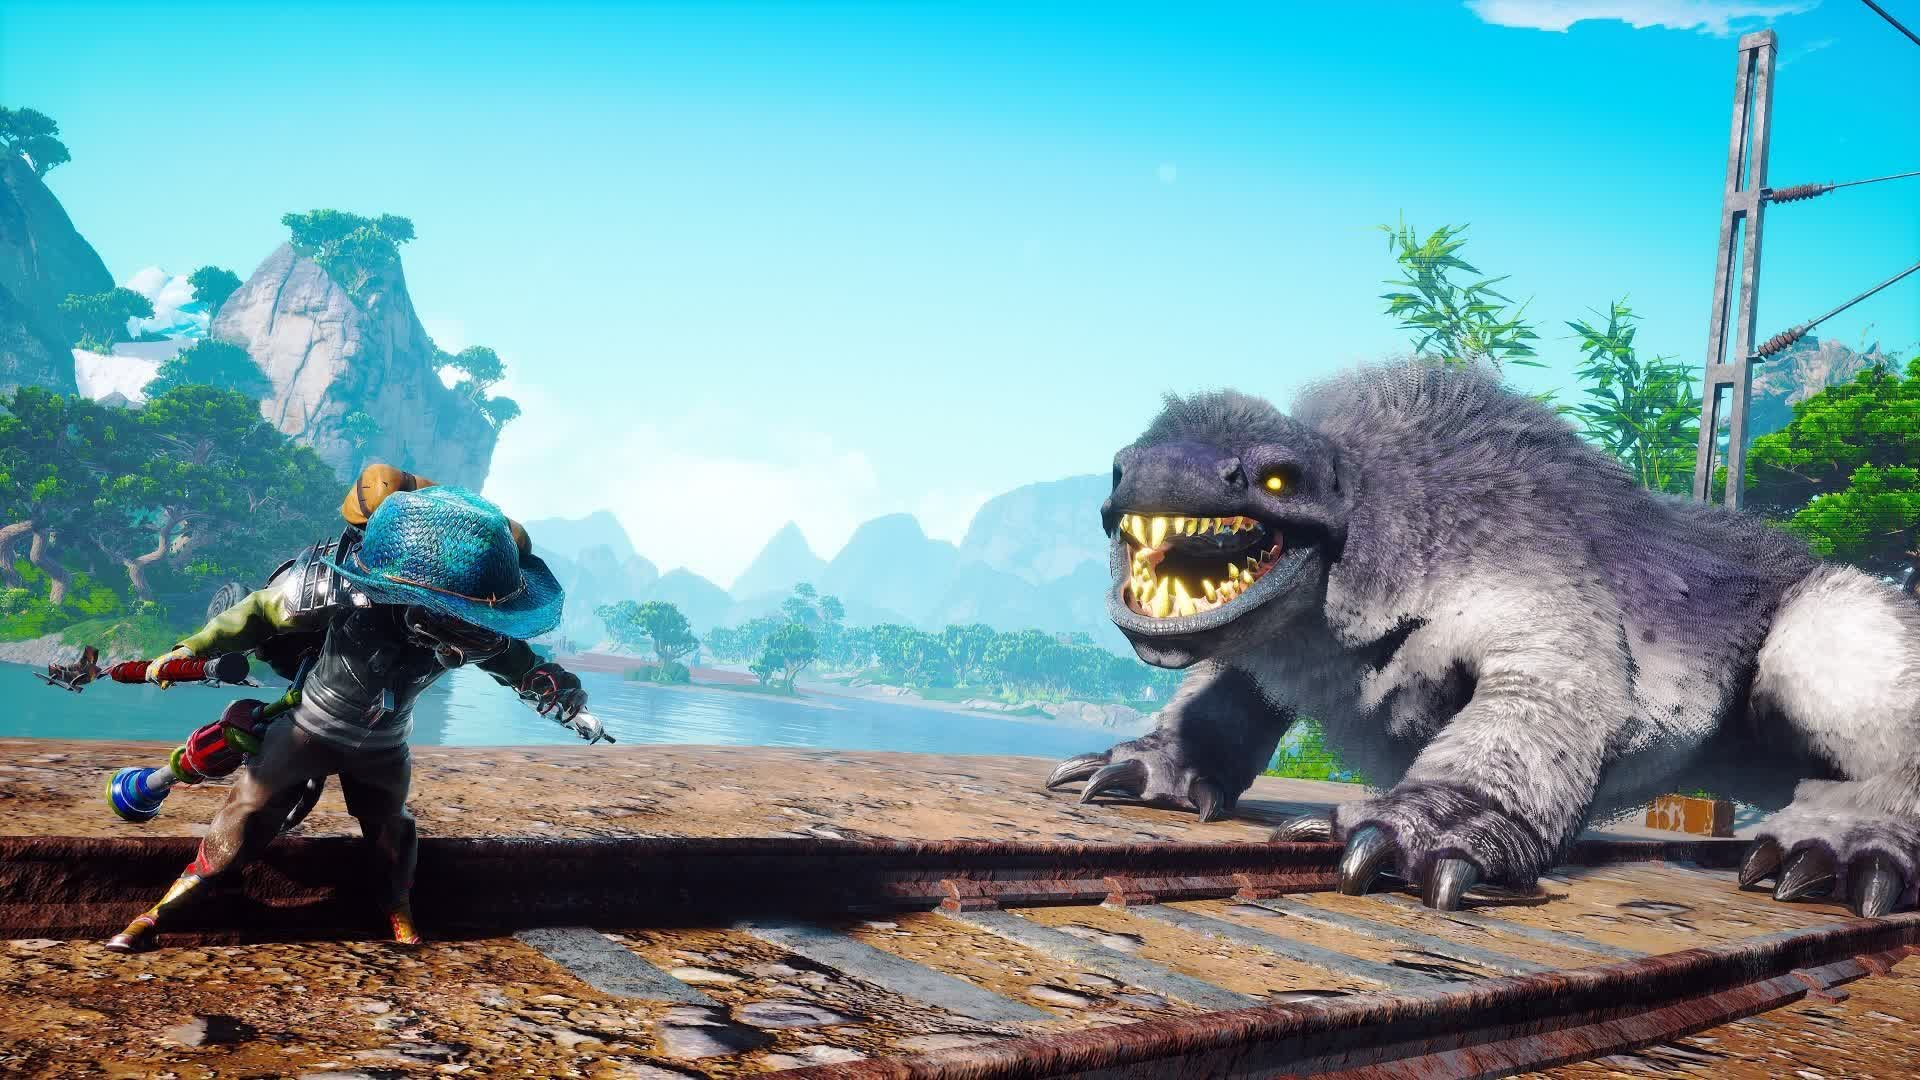 Biomutant console comparison reveals no native 4K on PS5 due to technical reasons